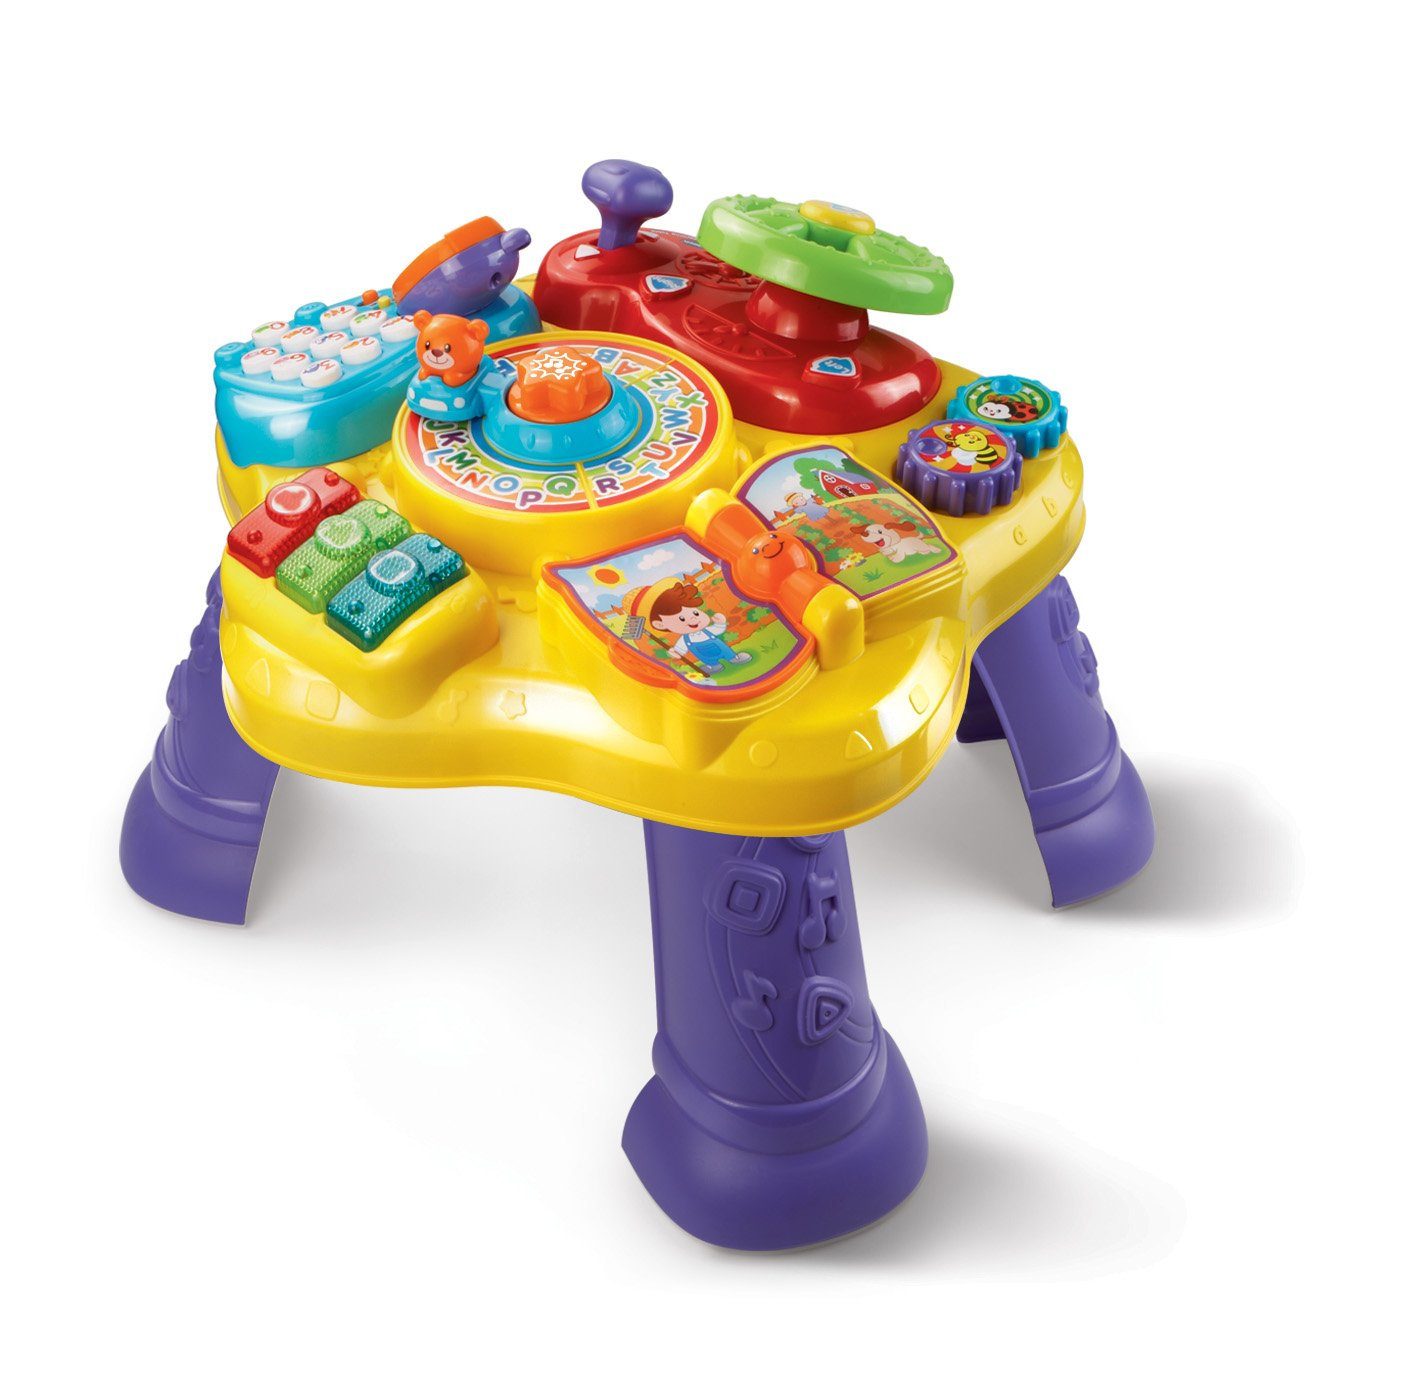 VTech Magic Star Learning Table only $19.99! (was $29.99)